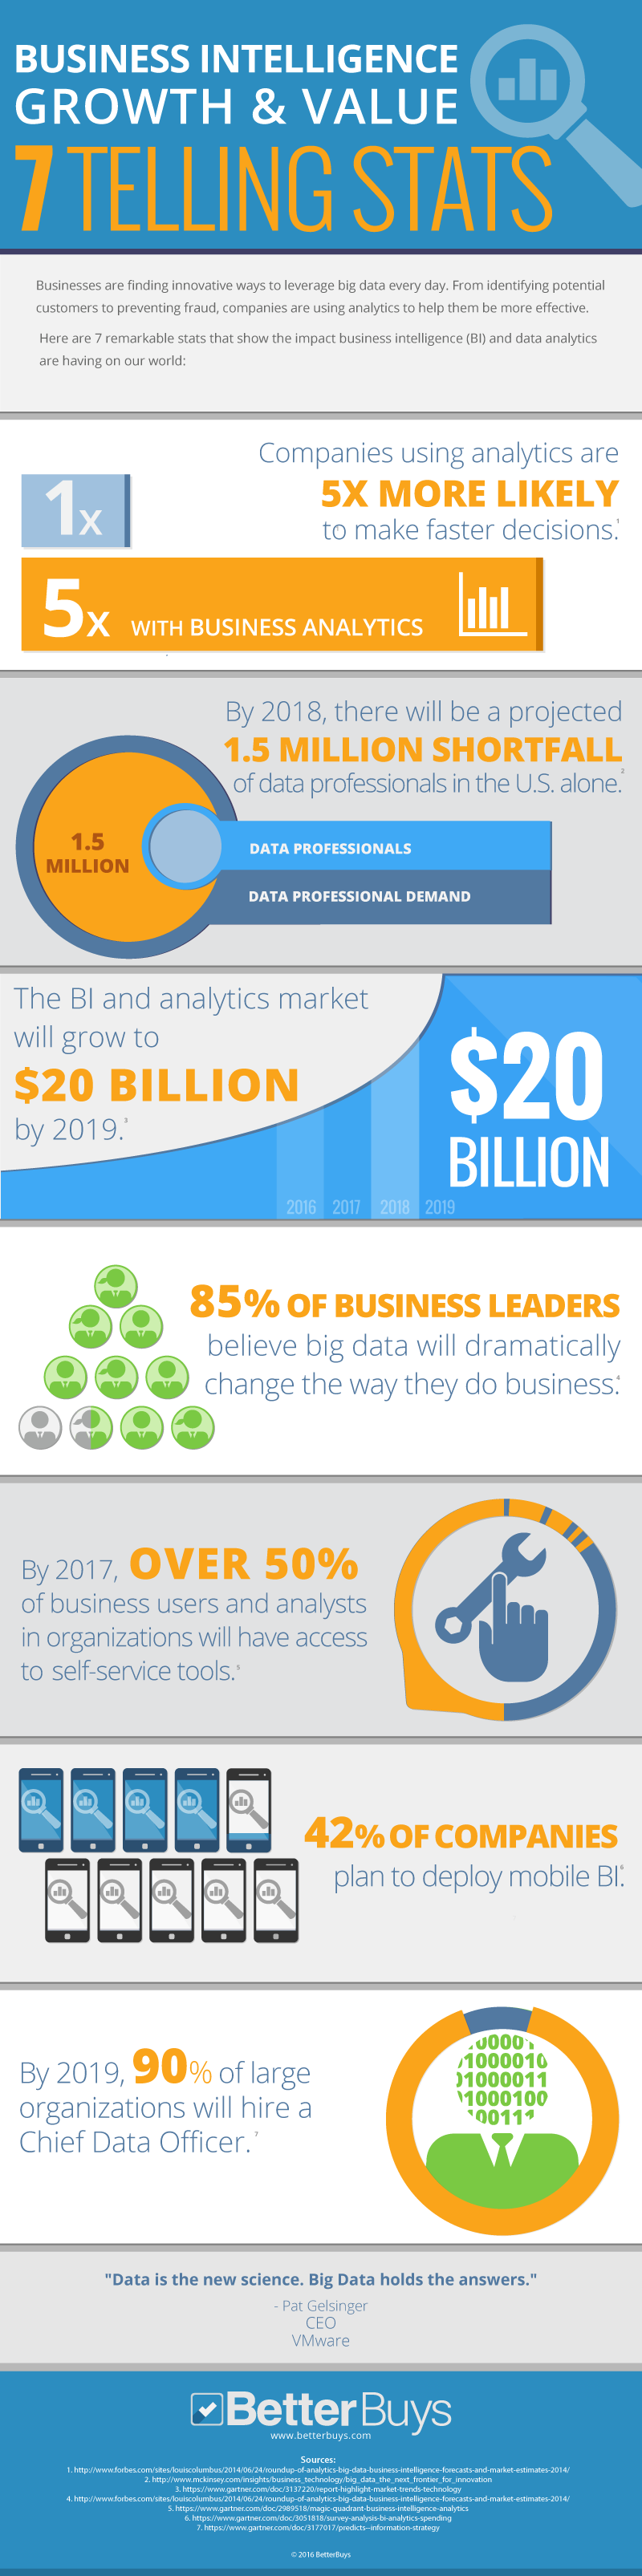 Business Intelligence growth and value: 7 telling stats